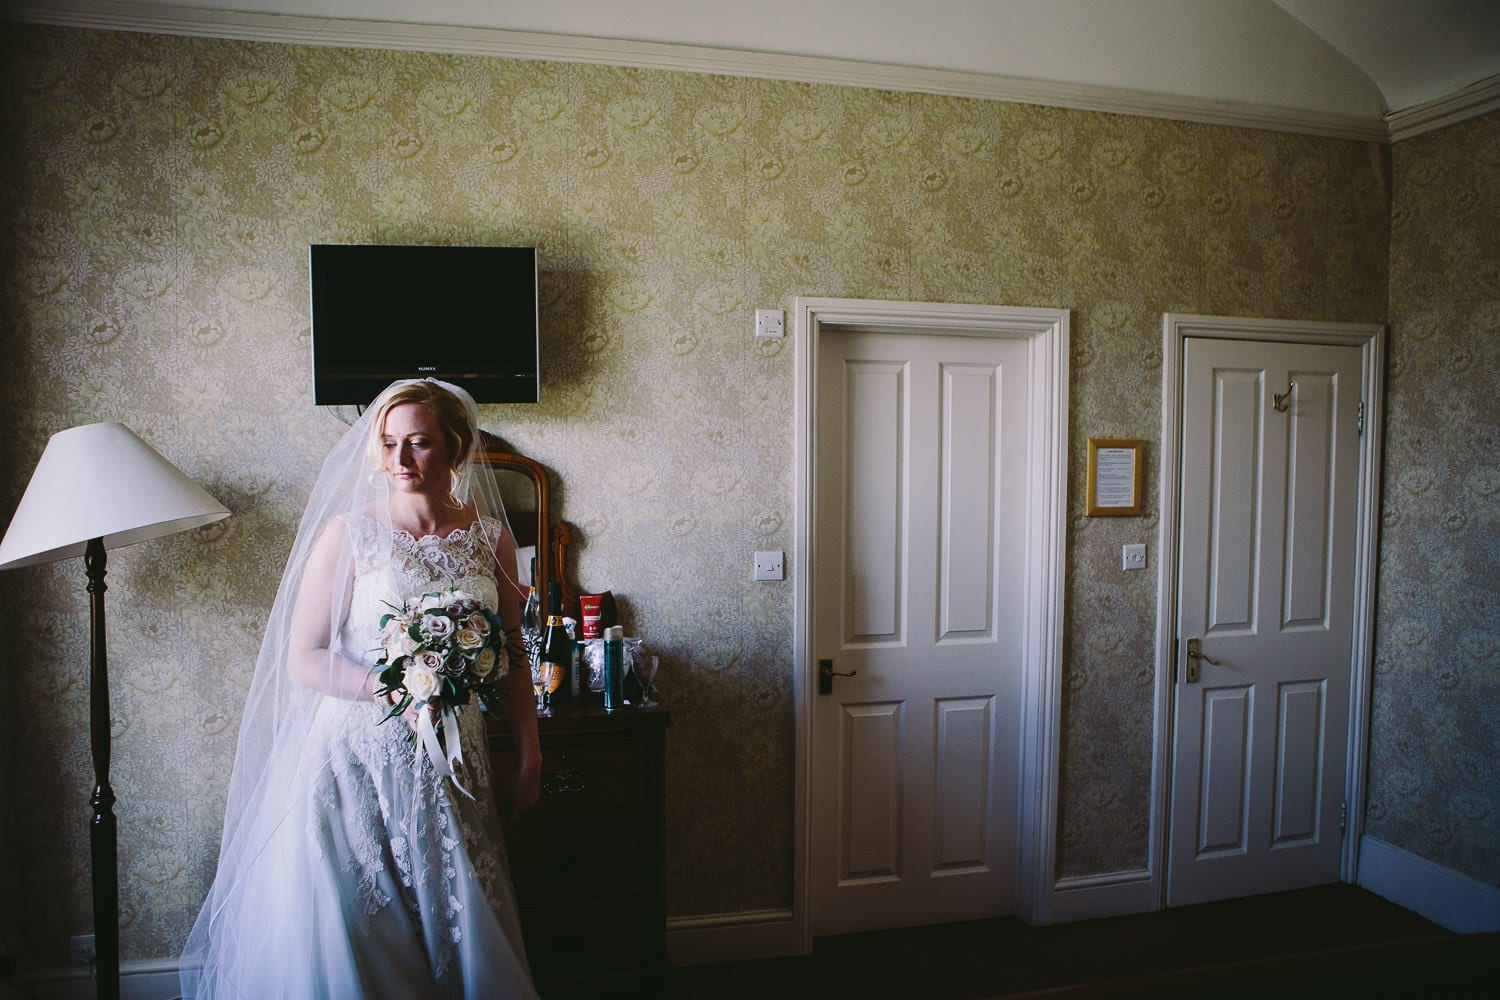 The bride waits for her father